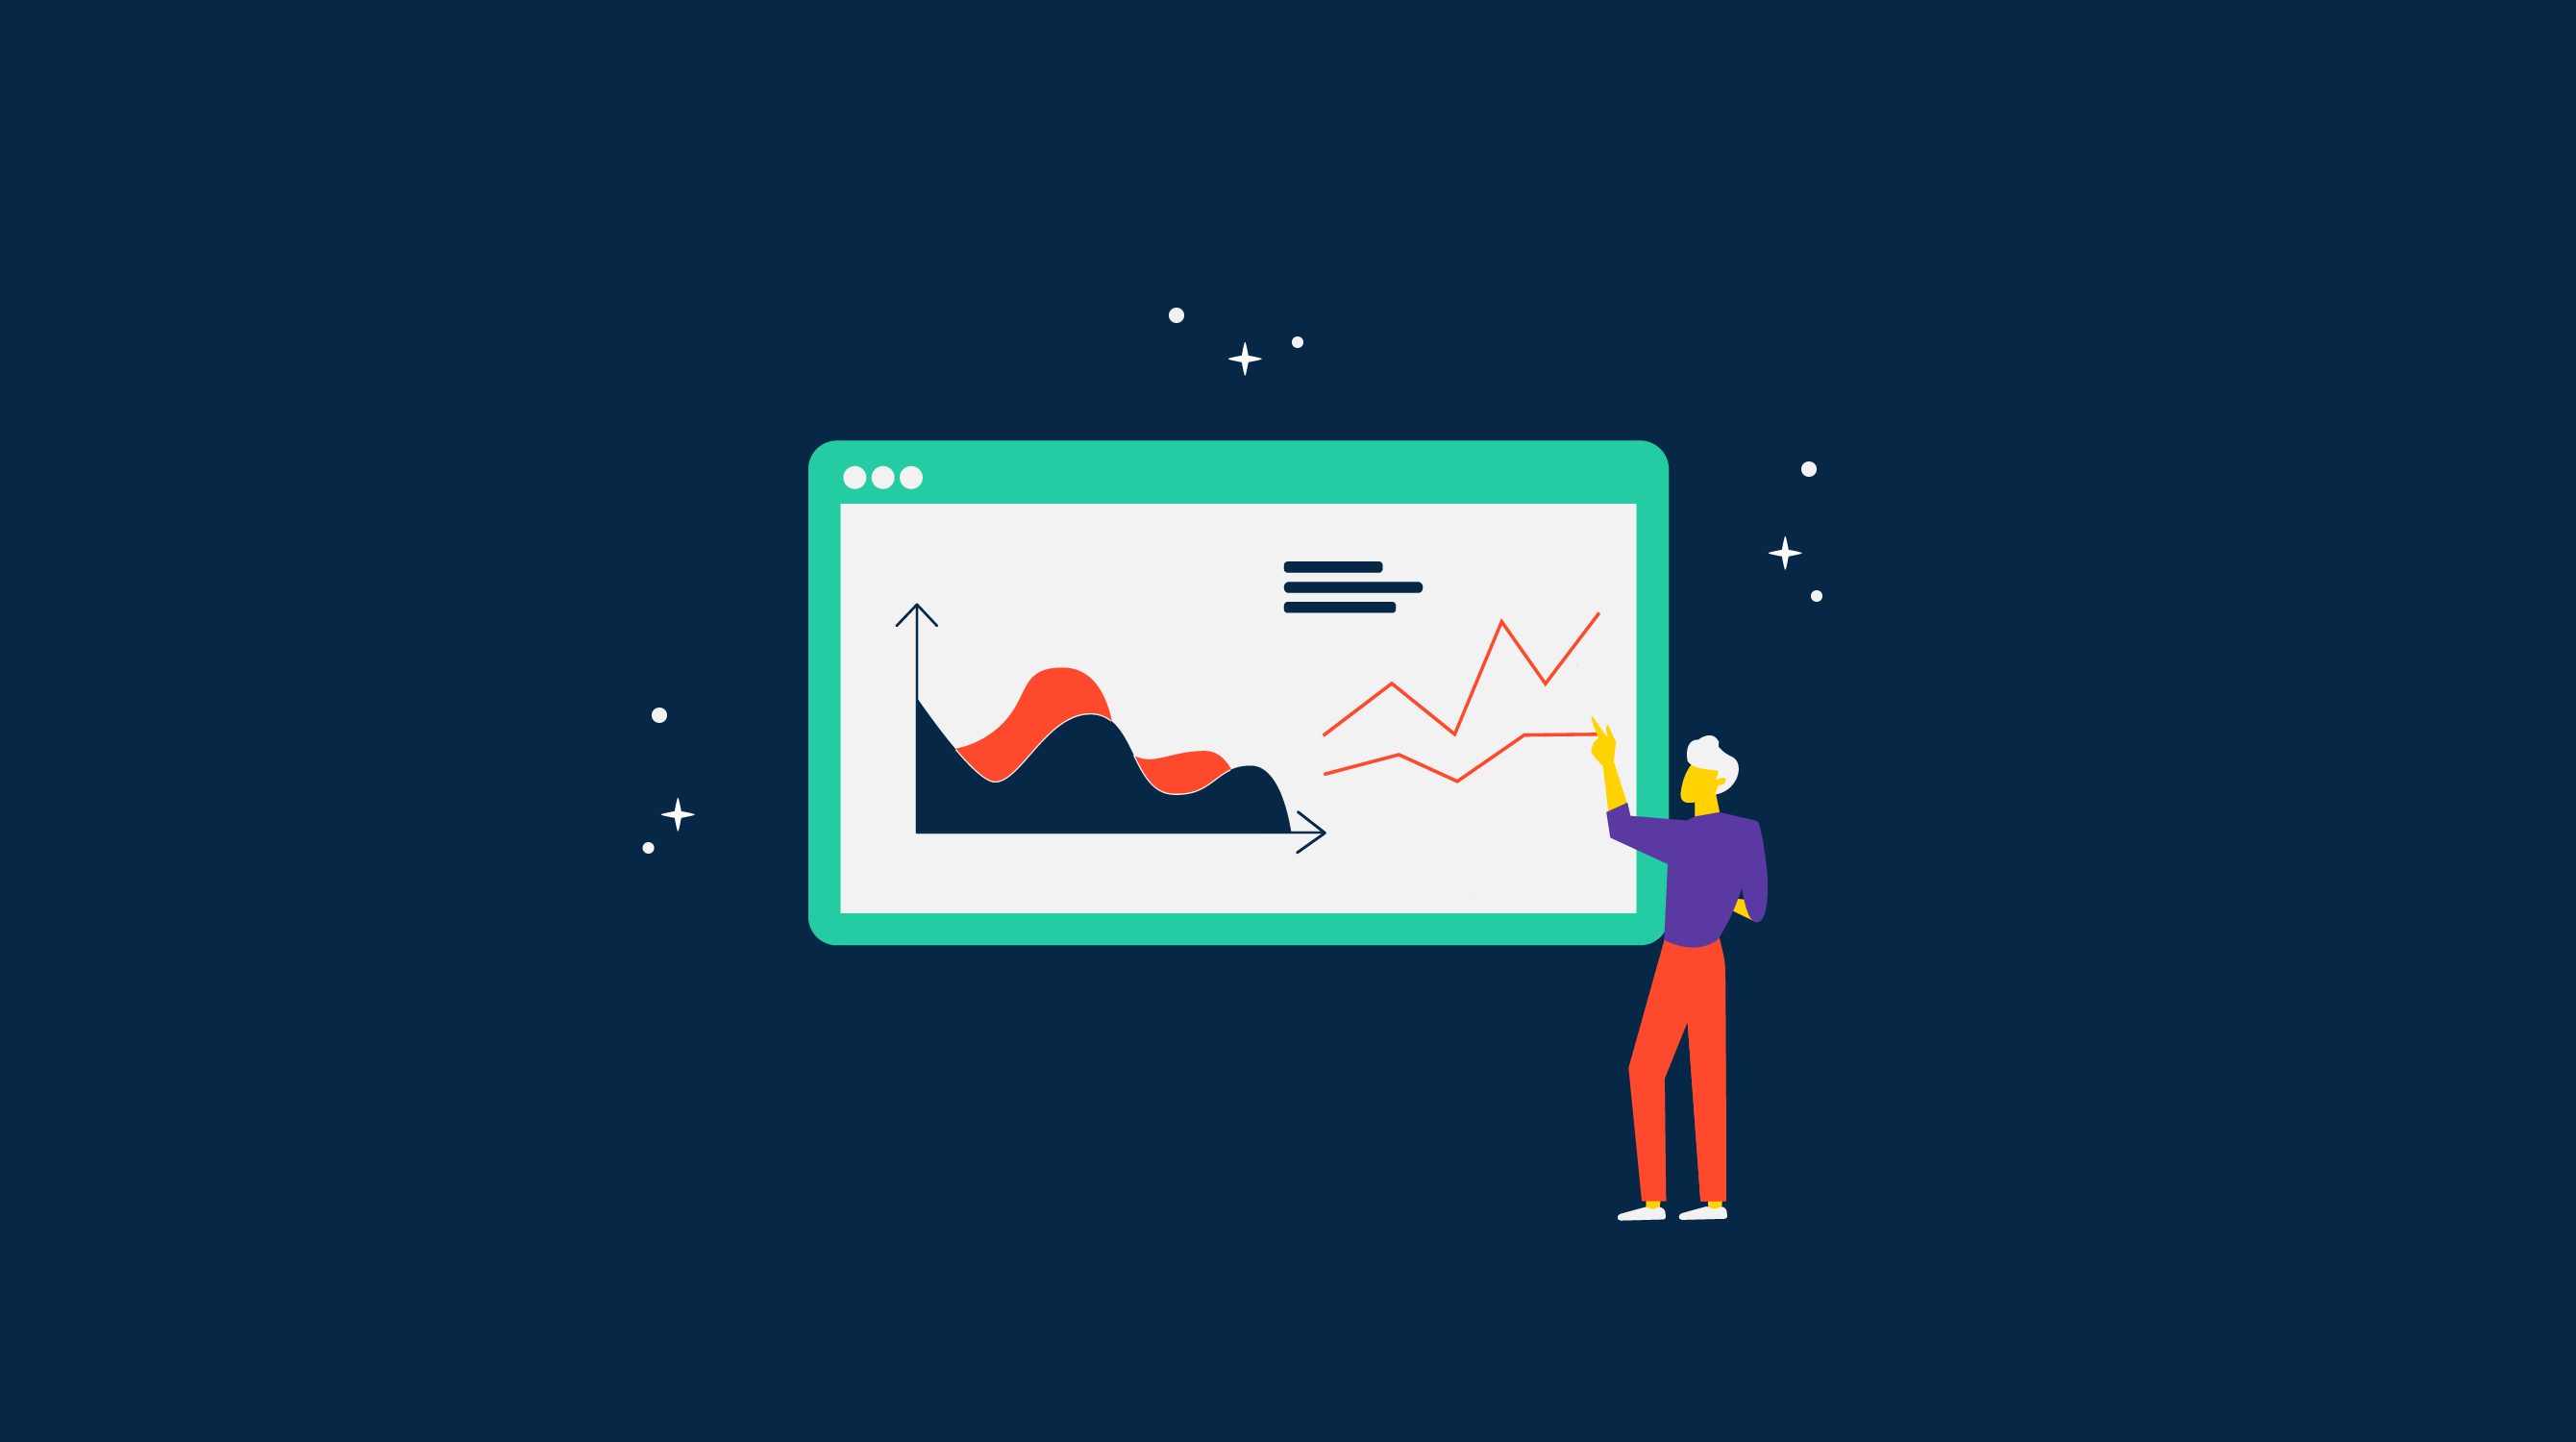 How to Turn Learning Analytics Into Meaningful Lessons